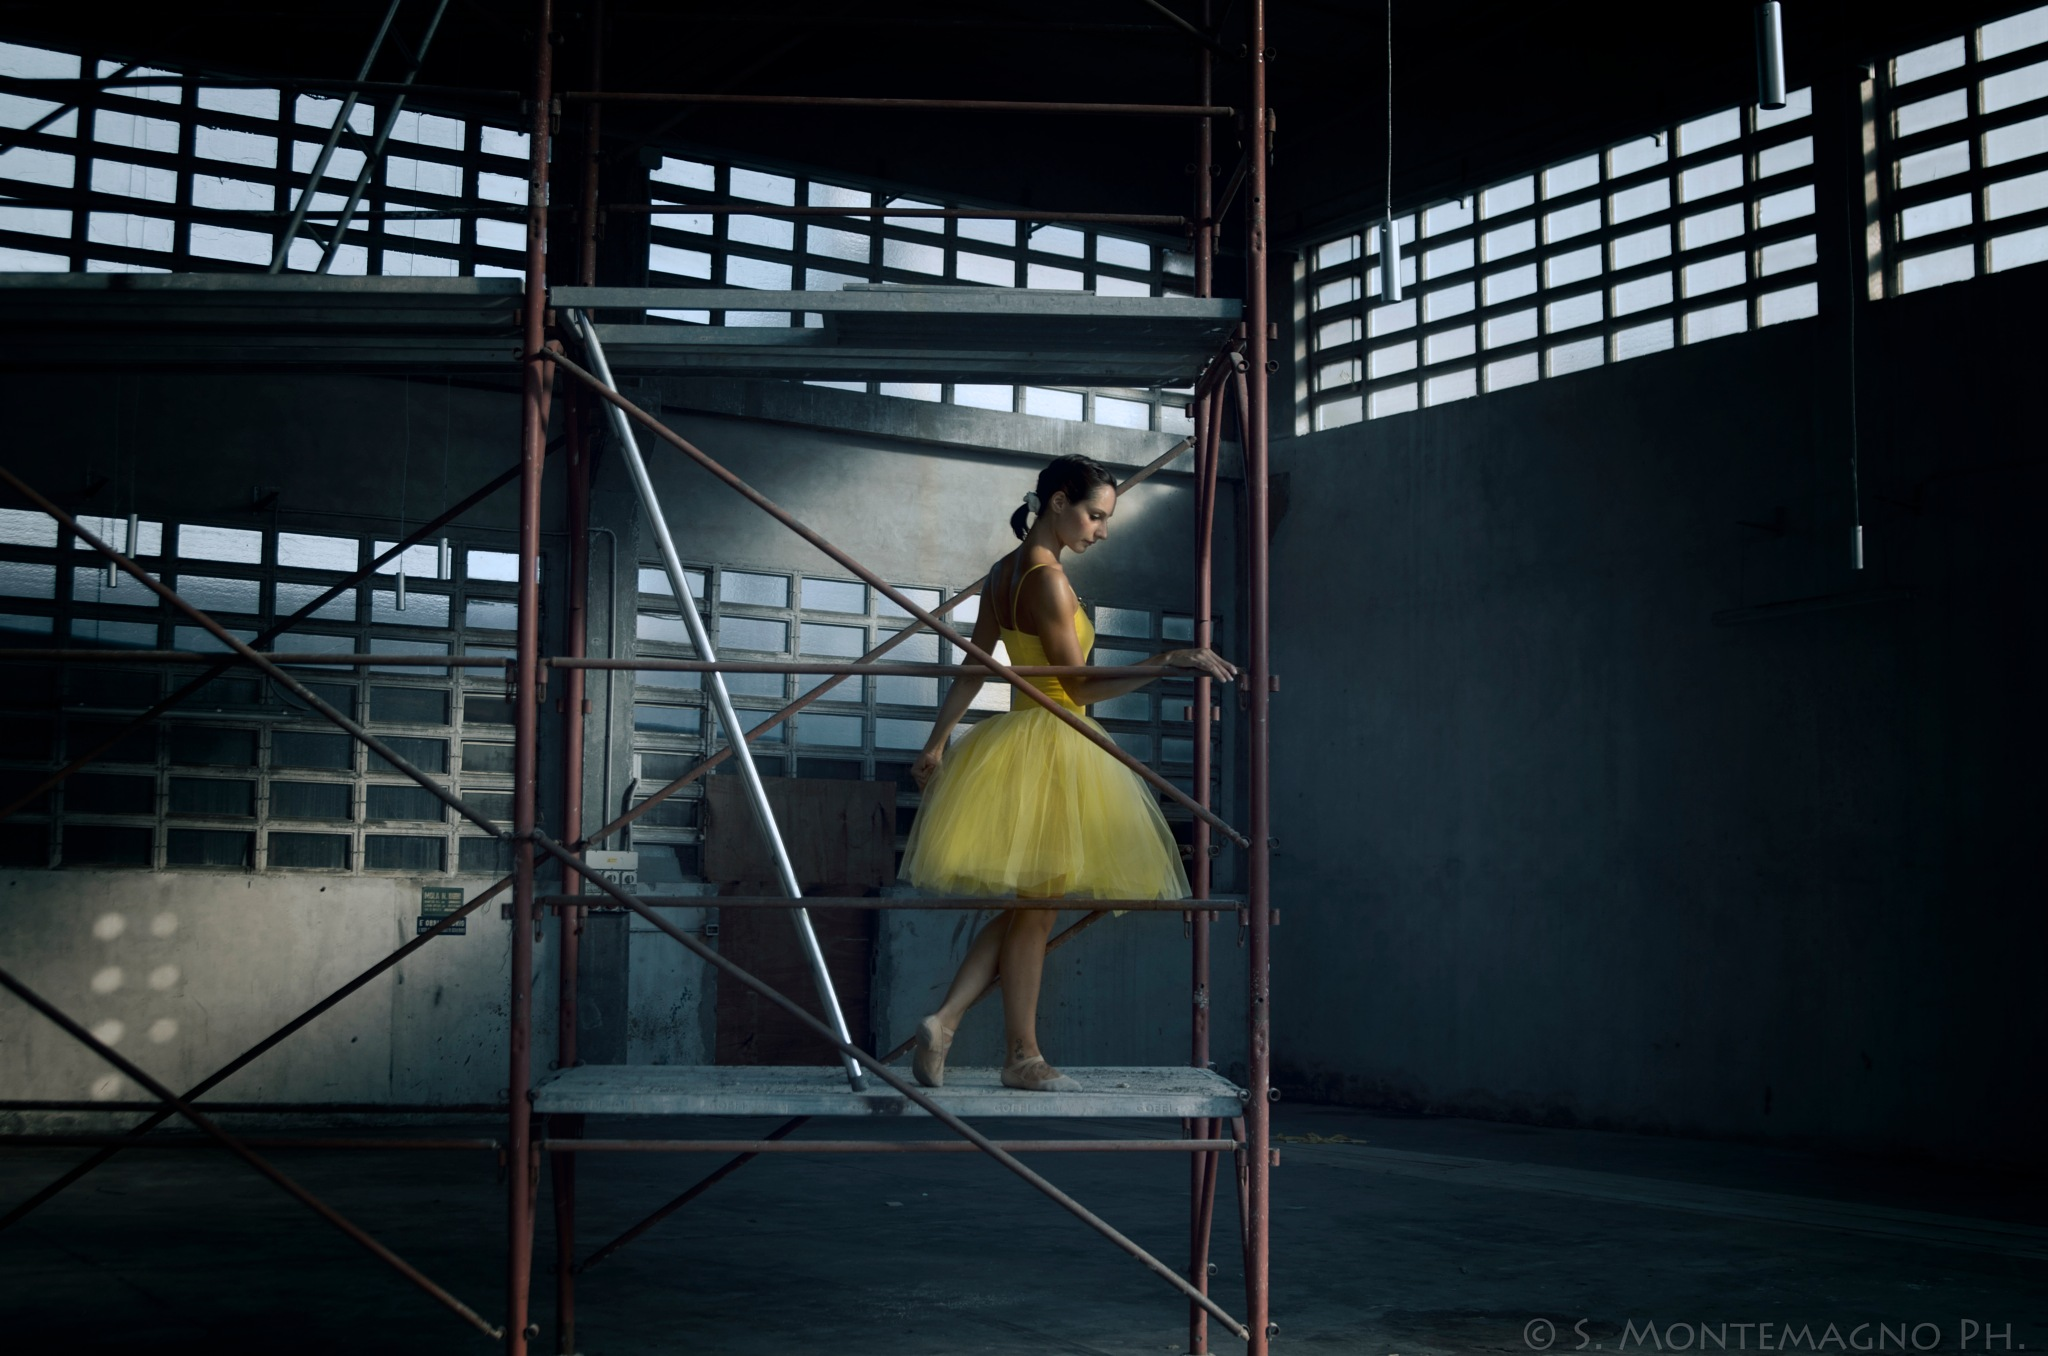 The yellow dancer by Salvatore Montemagno